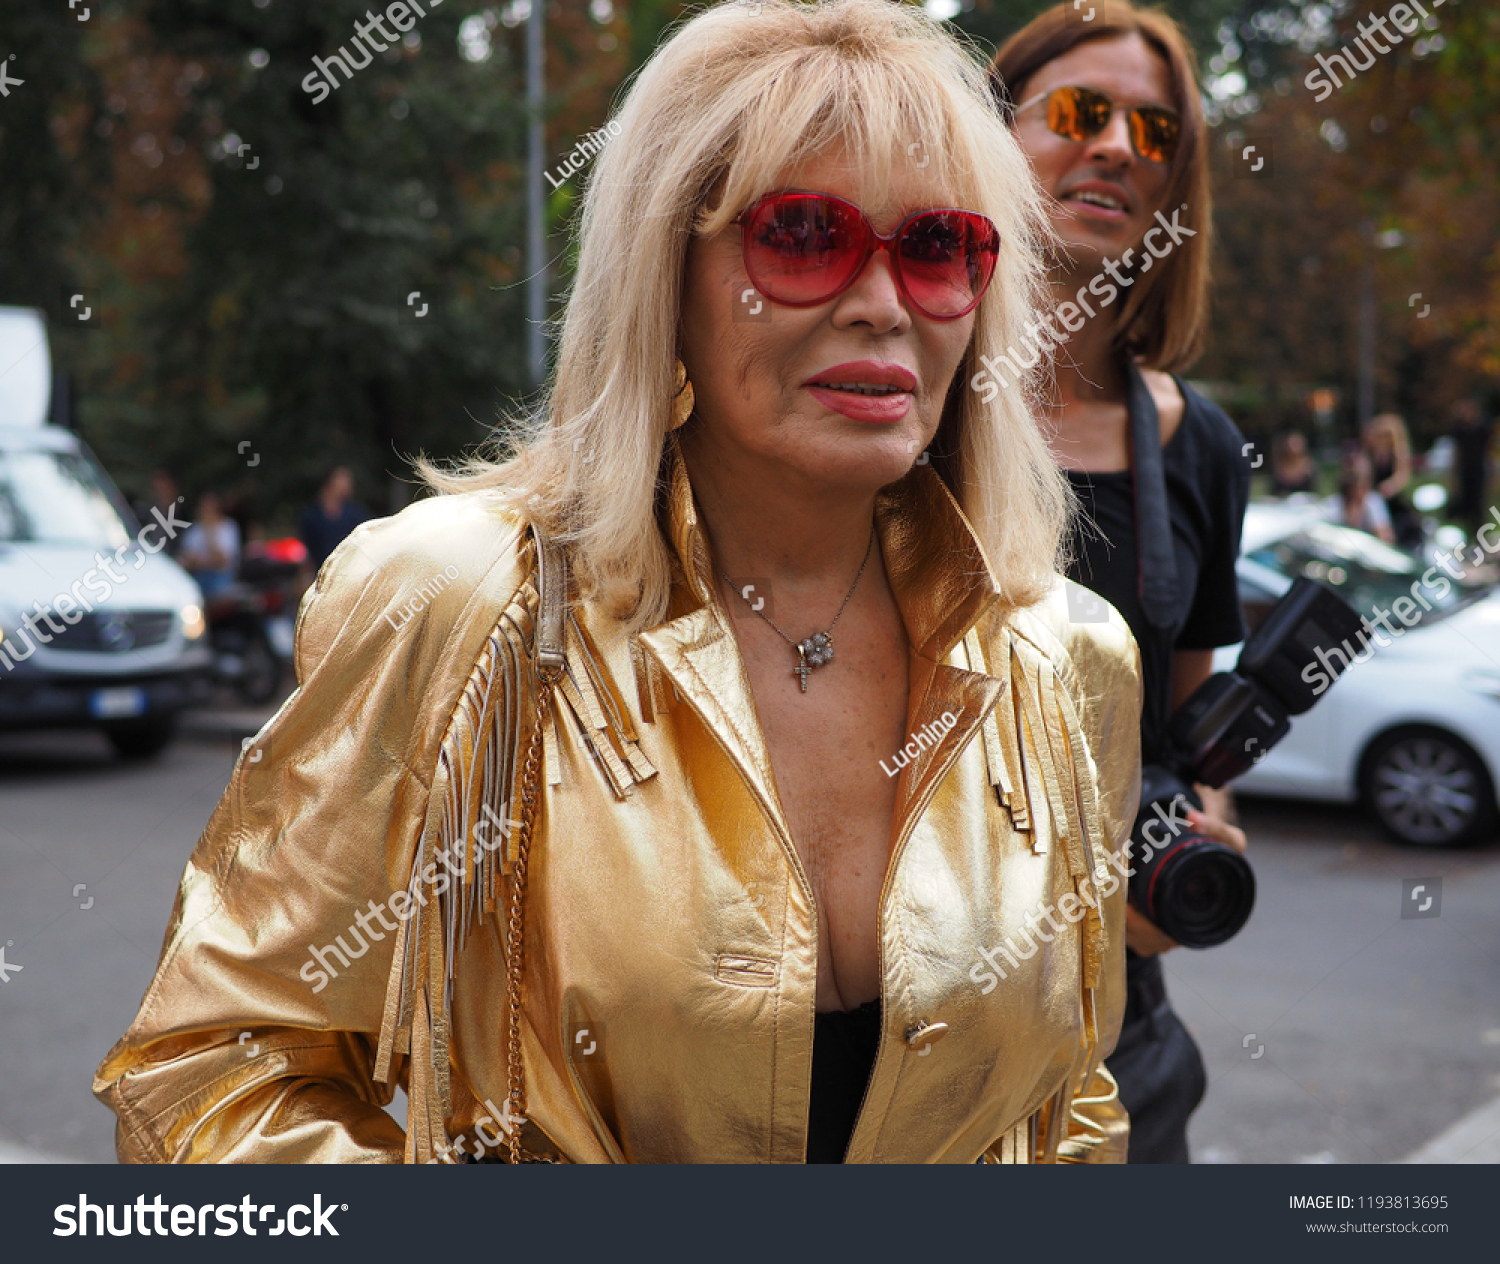 Amanda Lear See Through. 2018-2019 celebrityes photos leaks! new picture